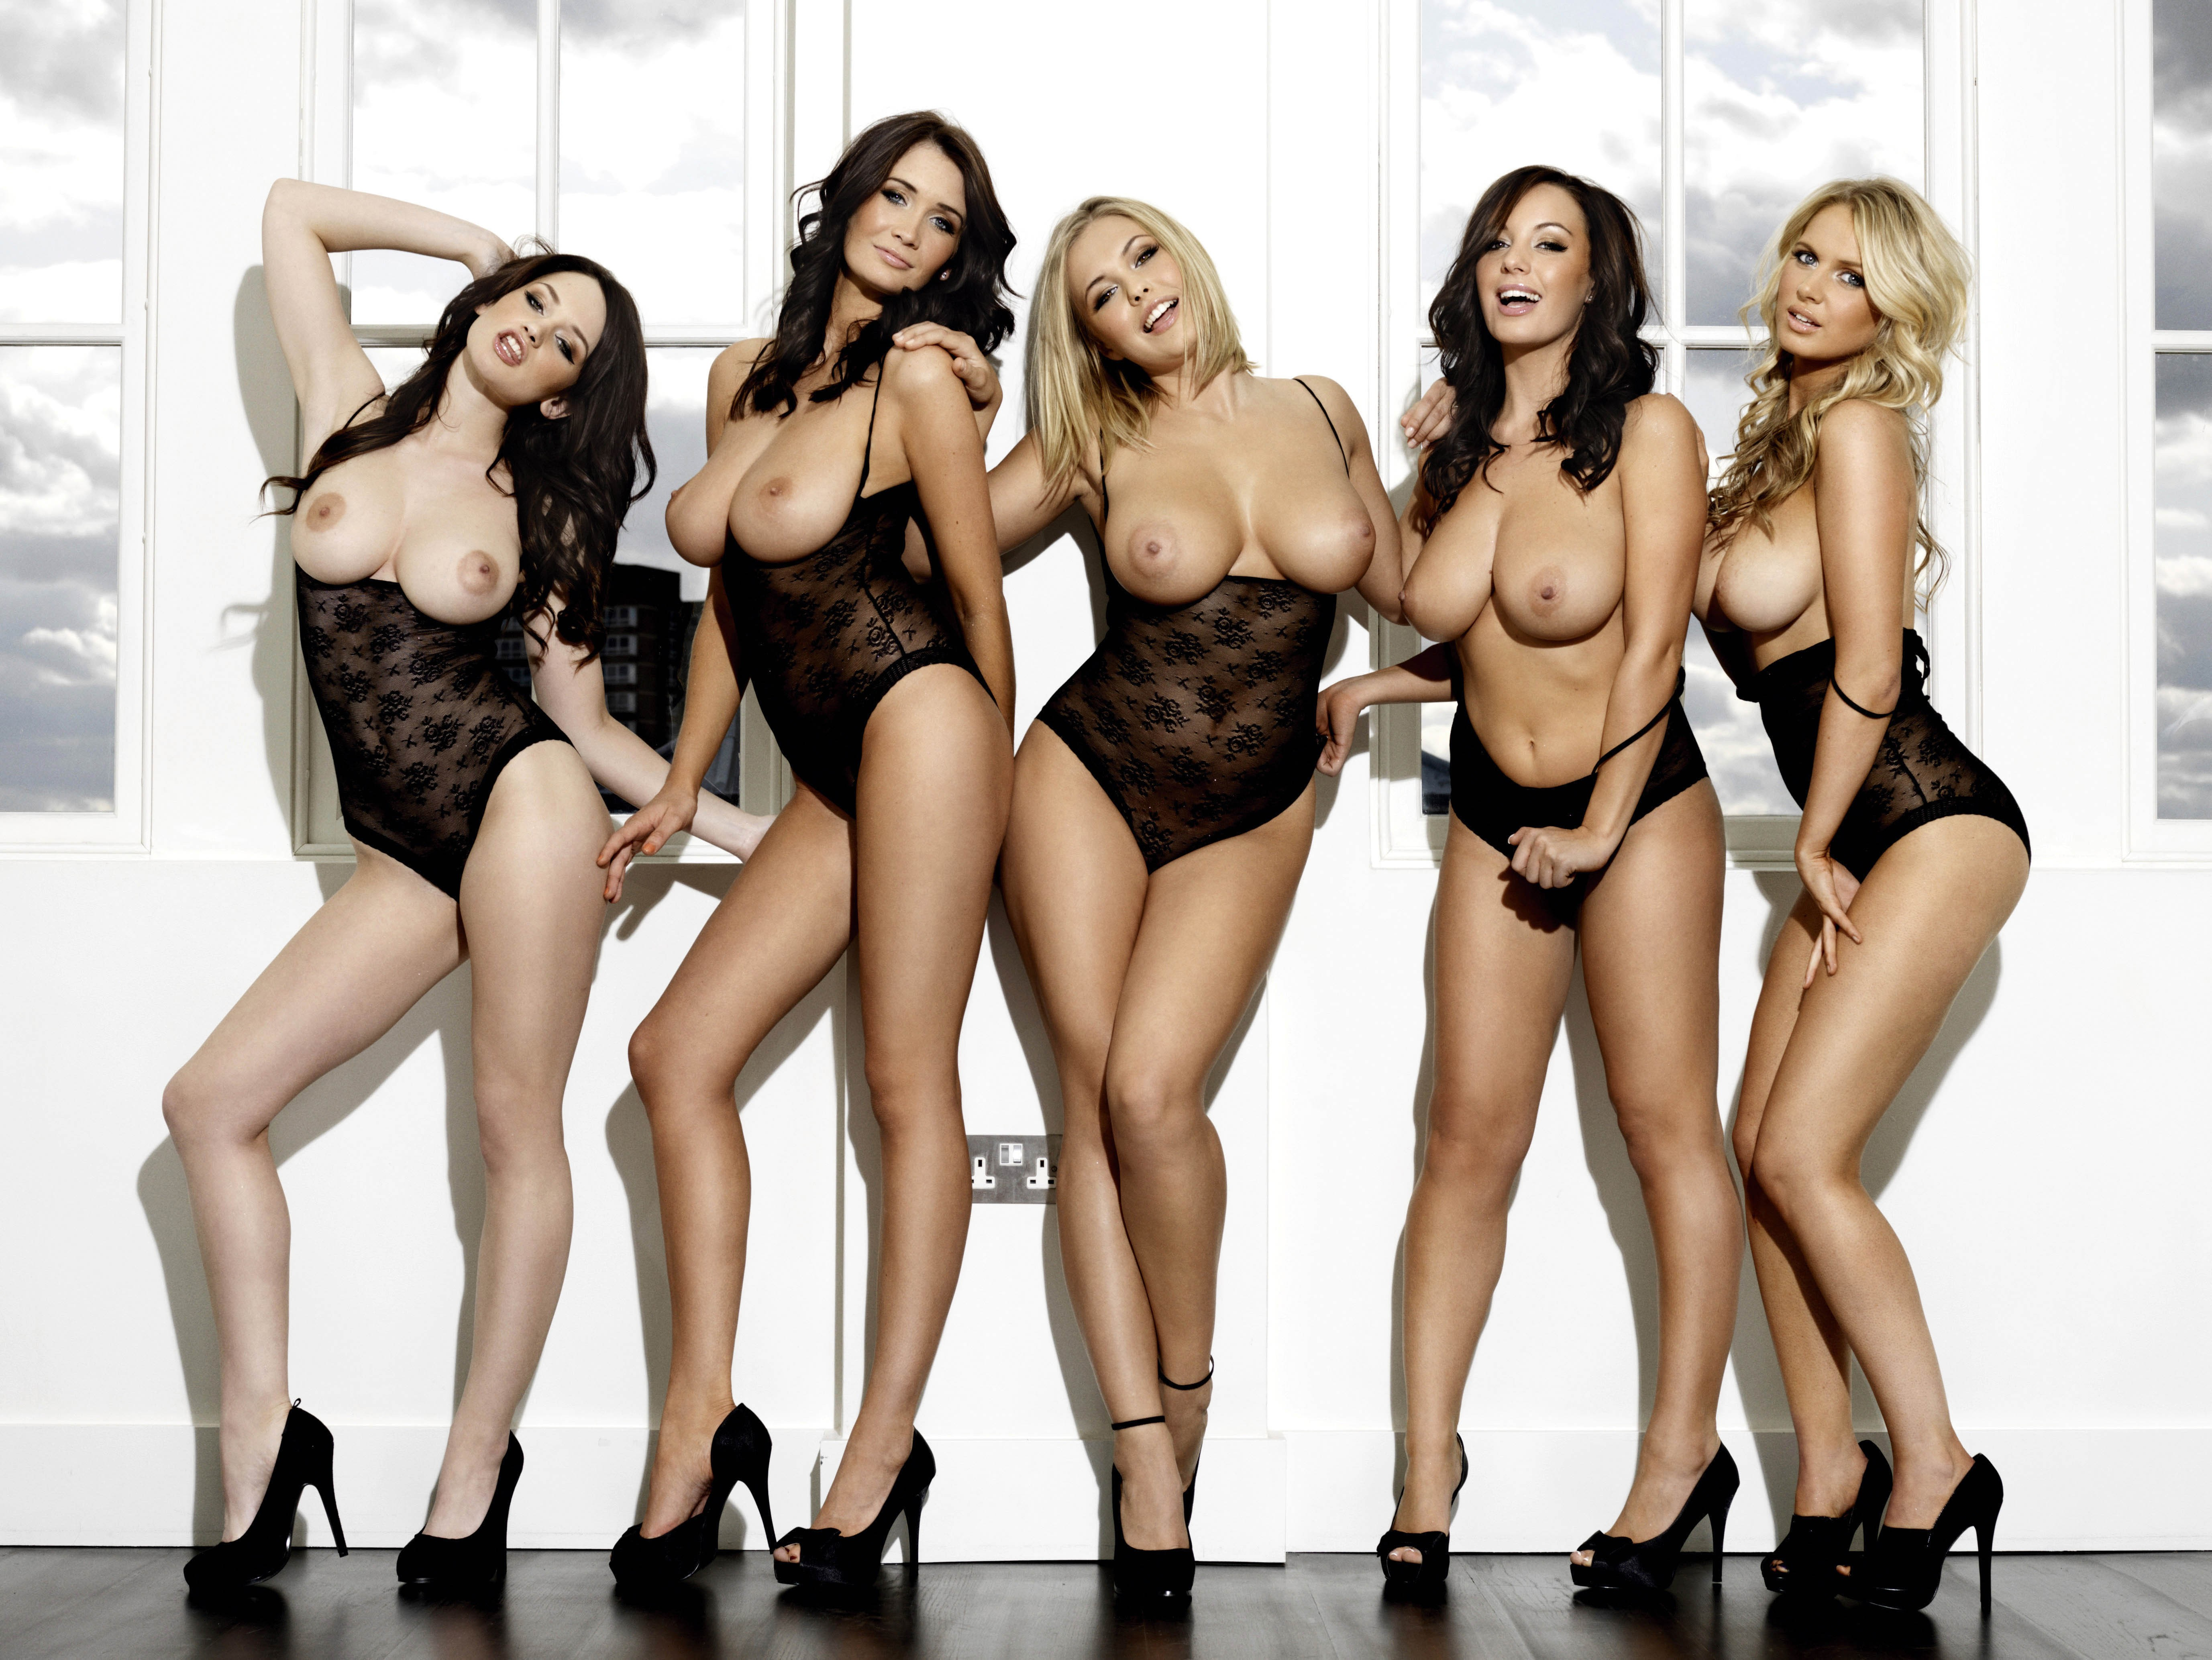 naked-girls-in-group-mix-vol3-60